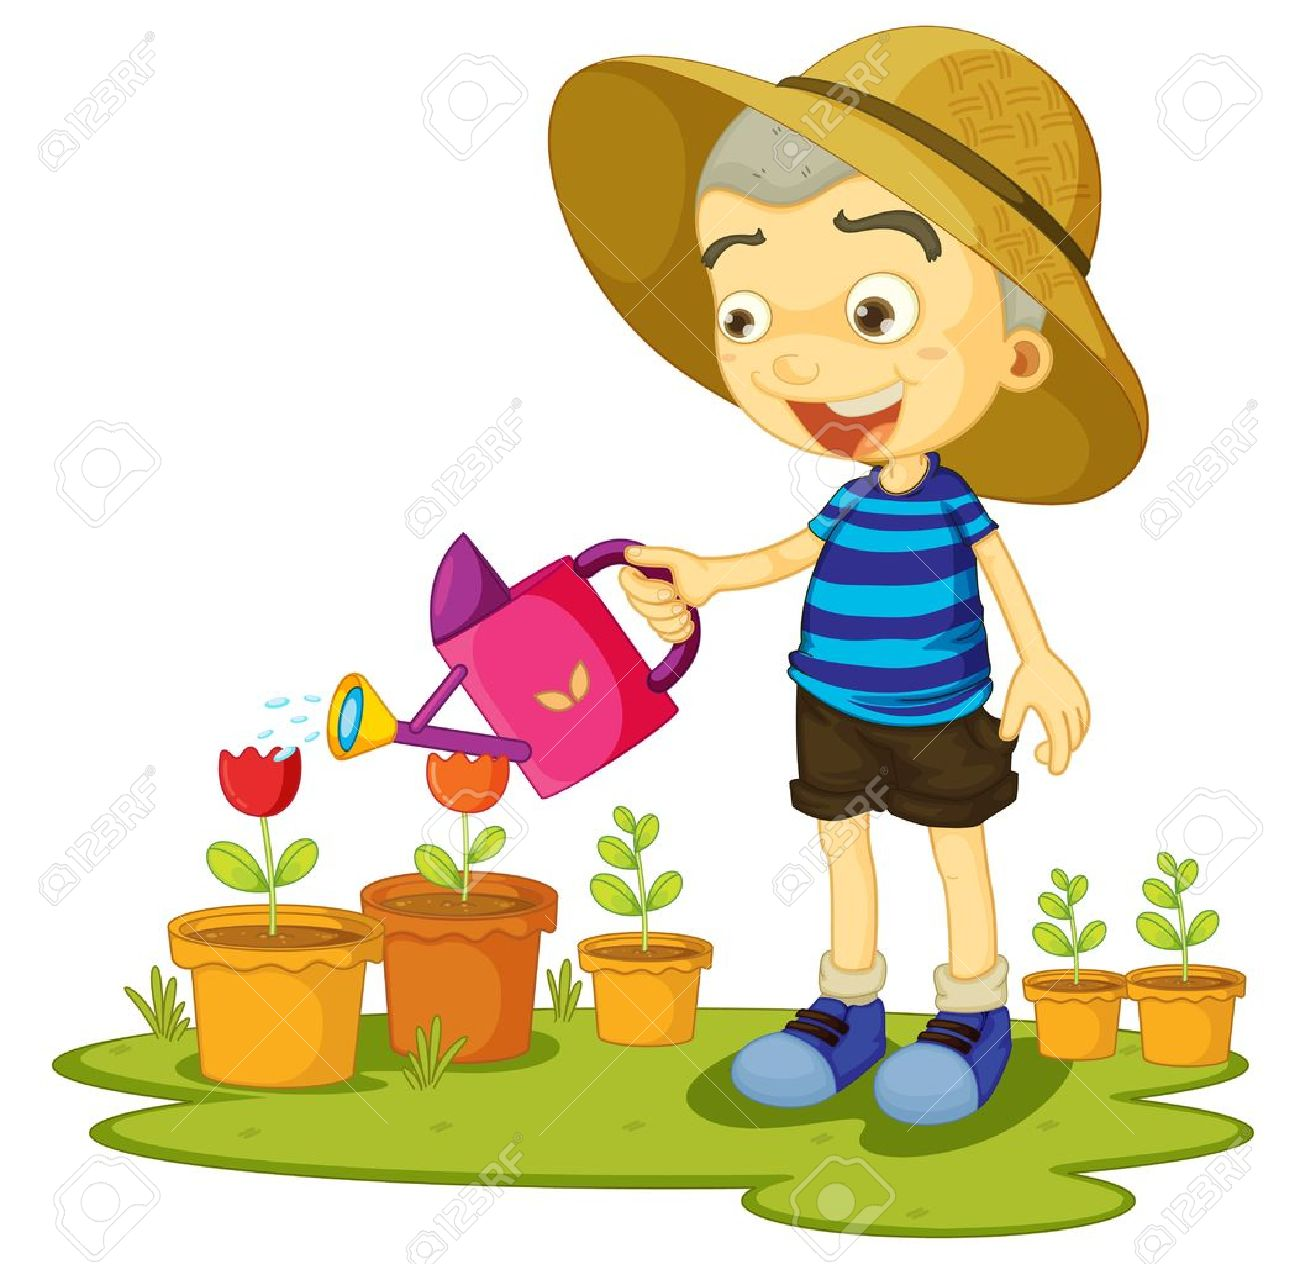 Boy watering plants clipart 10 » Clipart Station.